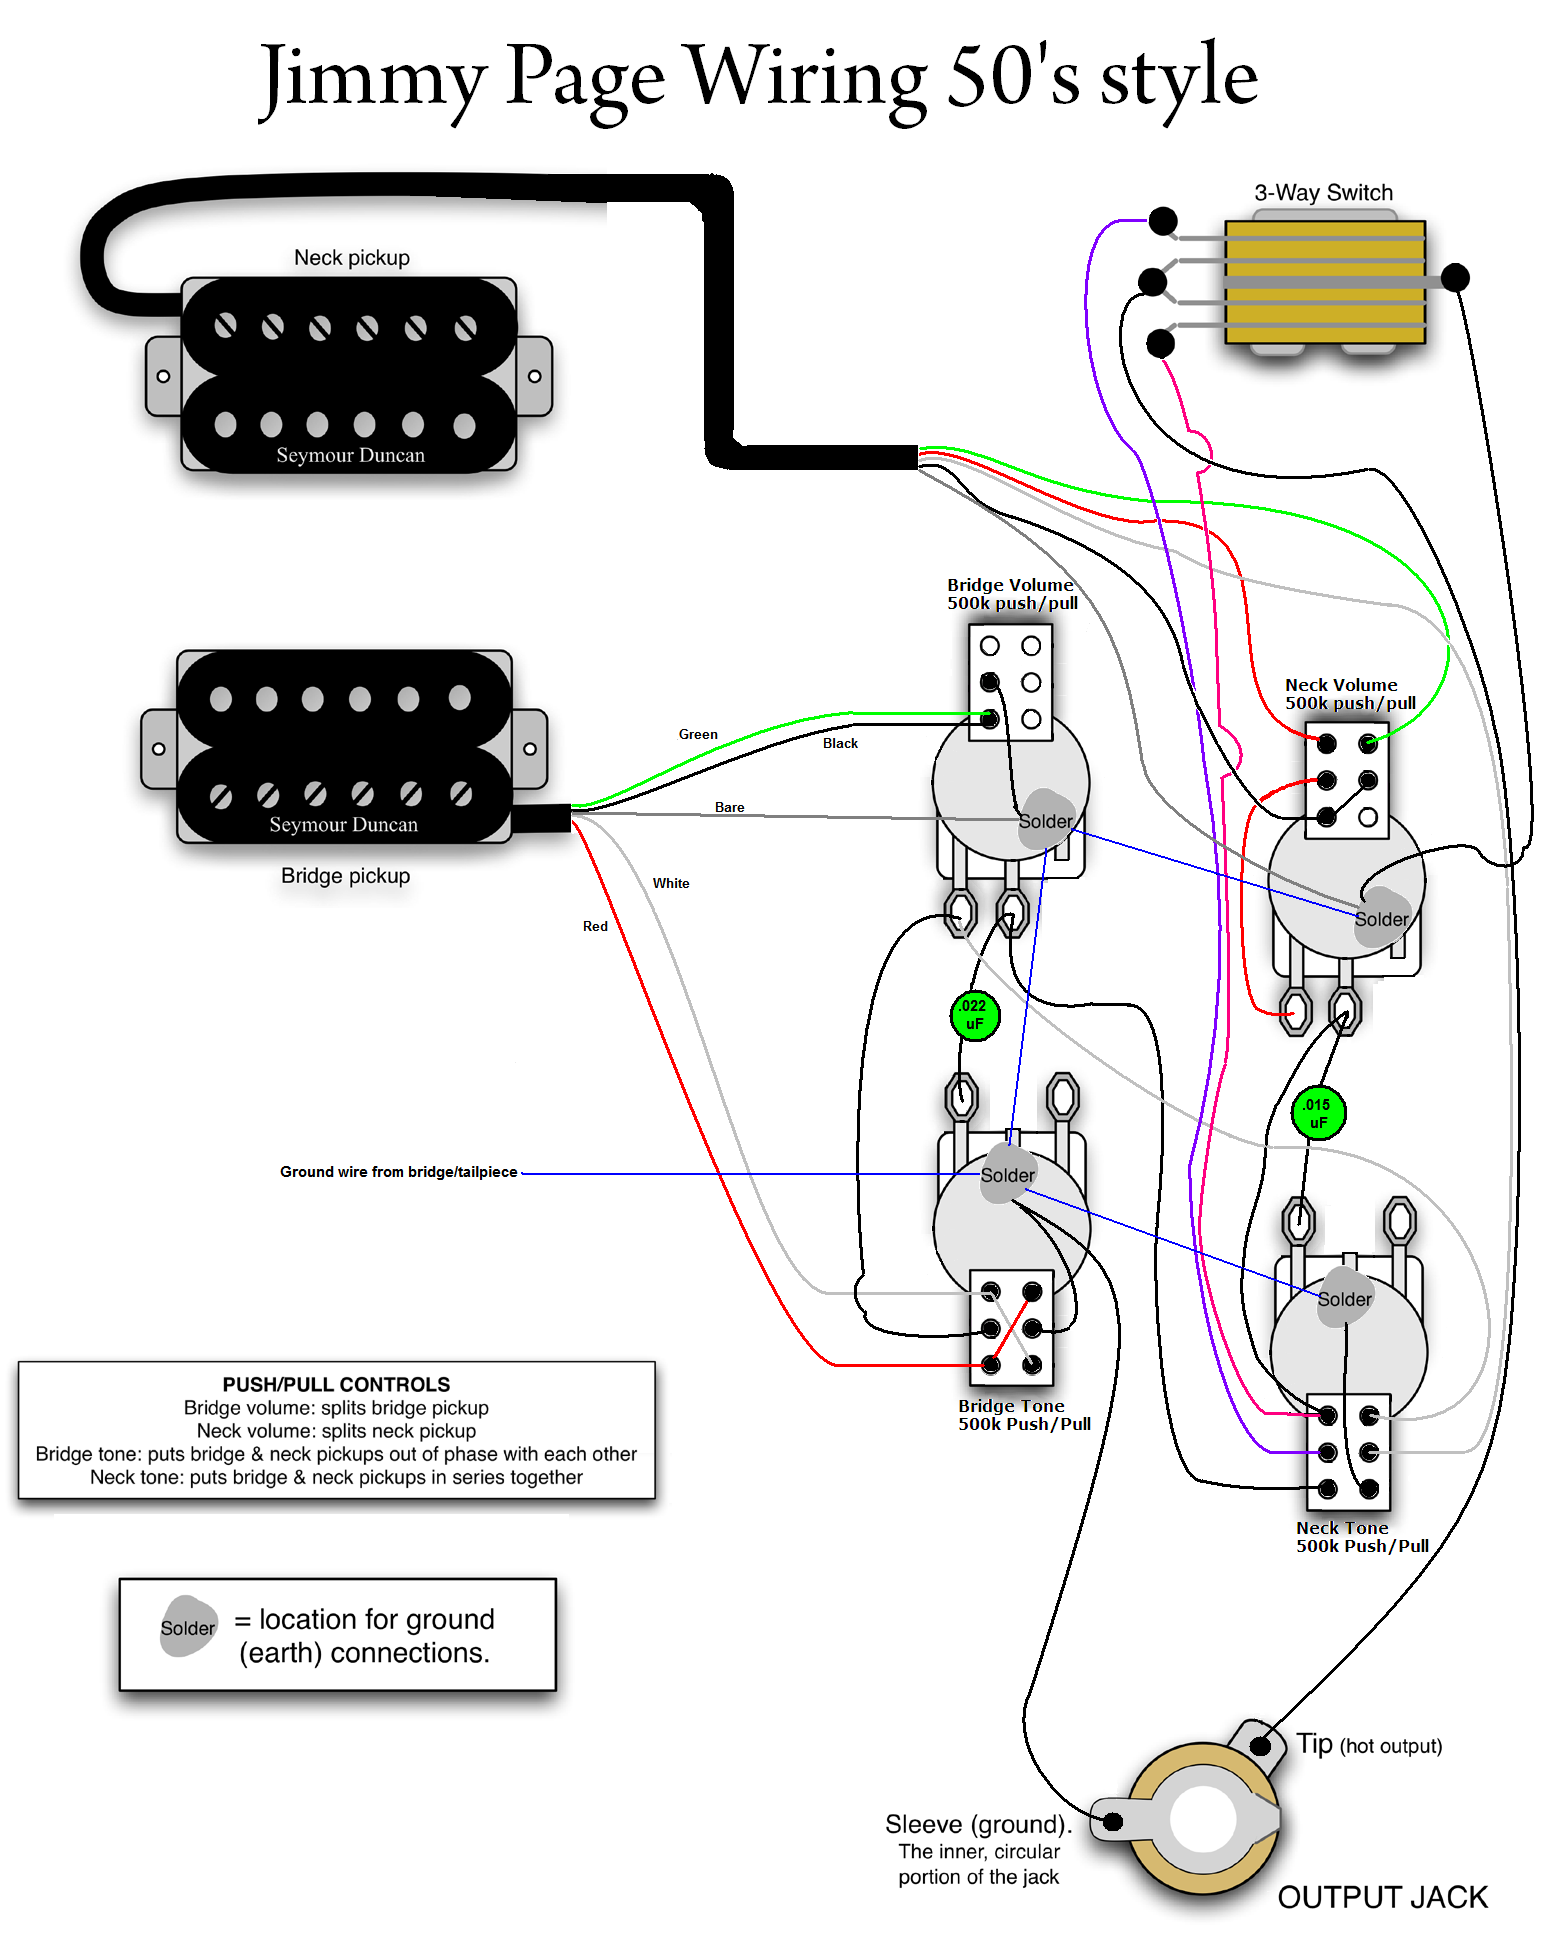 Jimmy Page 50s Wiring  MyLesPaul | Instruments in